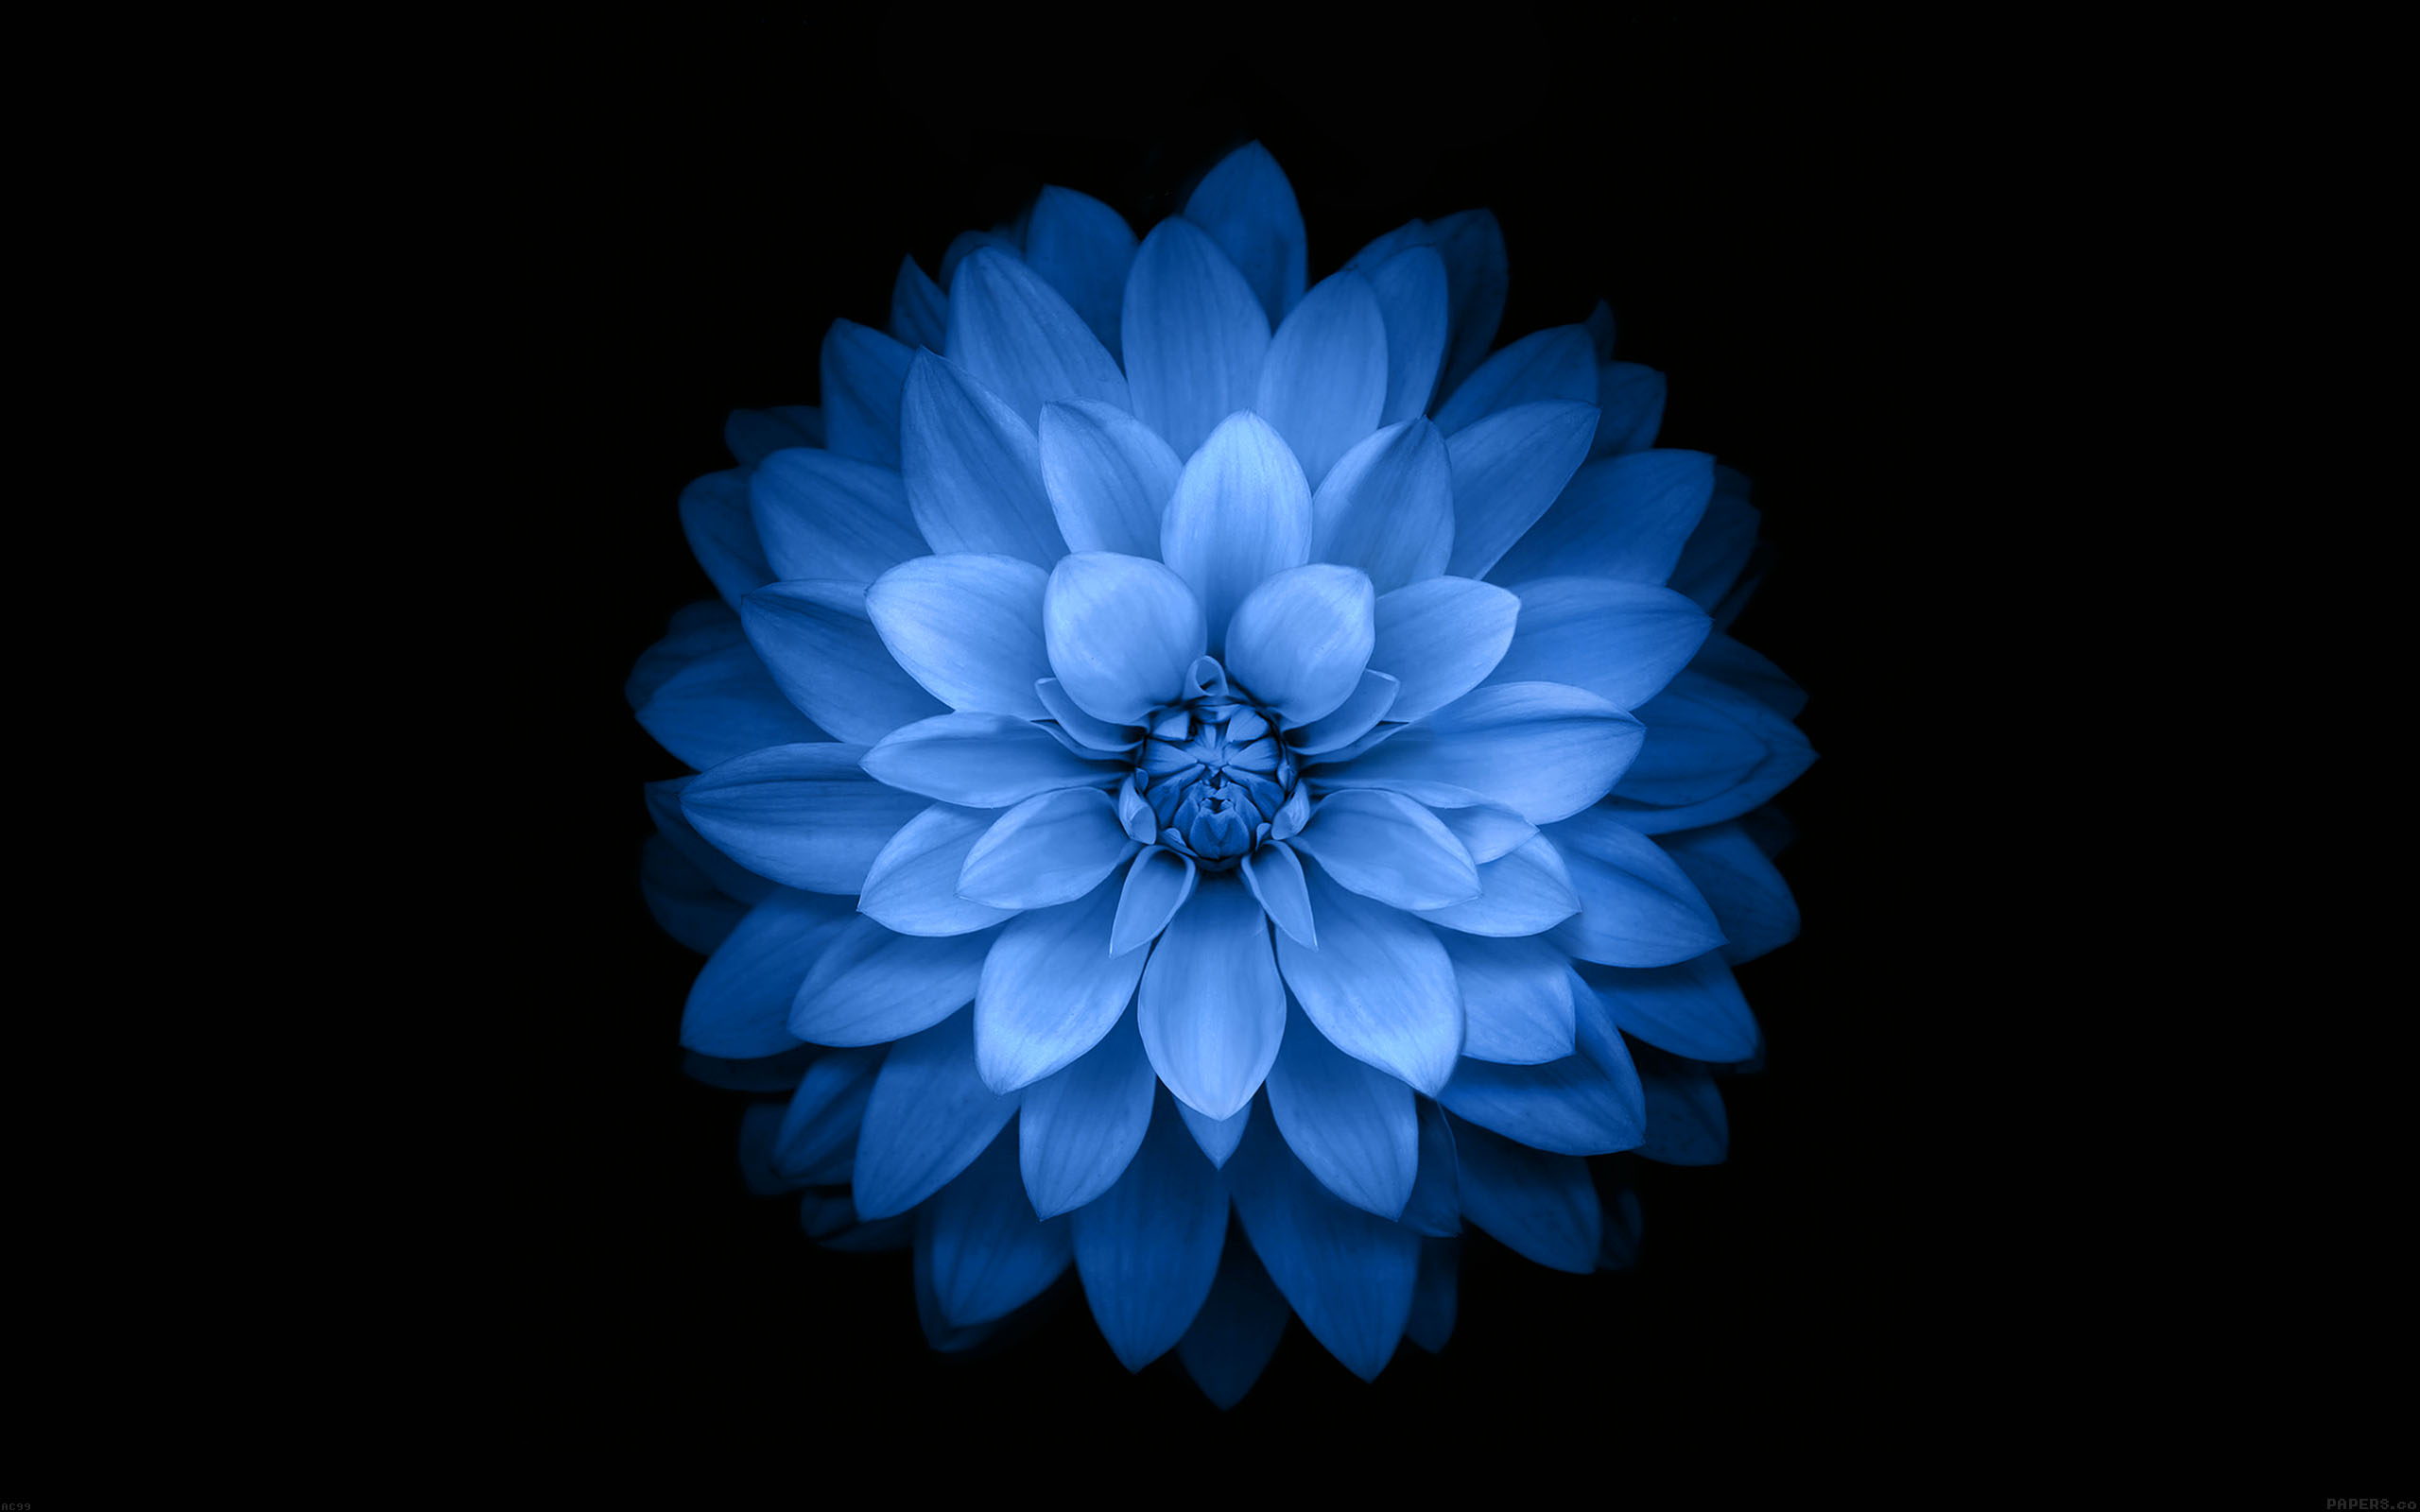 ac99 wallpaper apple blue lotus iphone6 plus ios8 flower